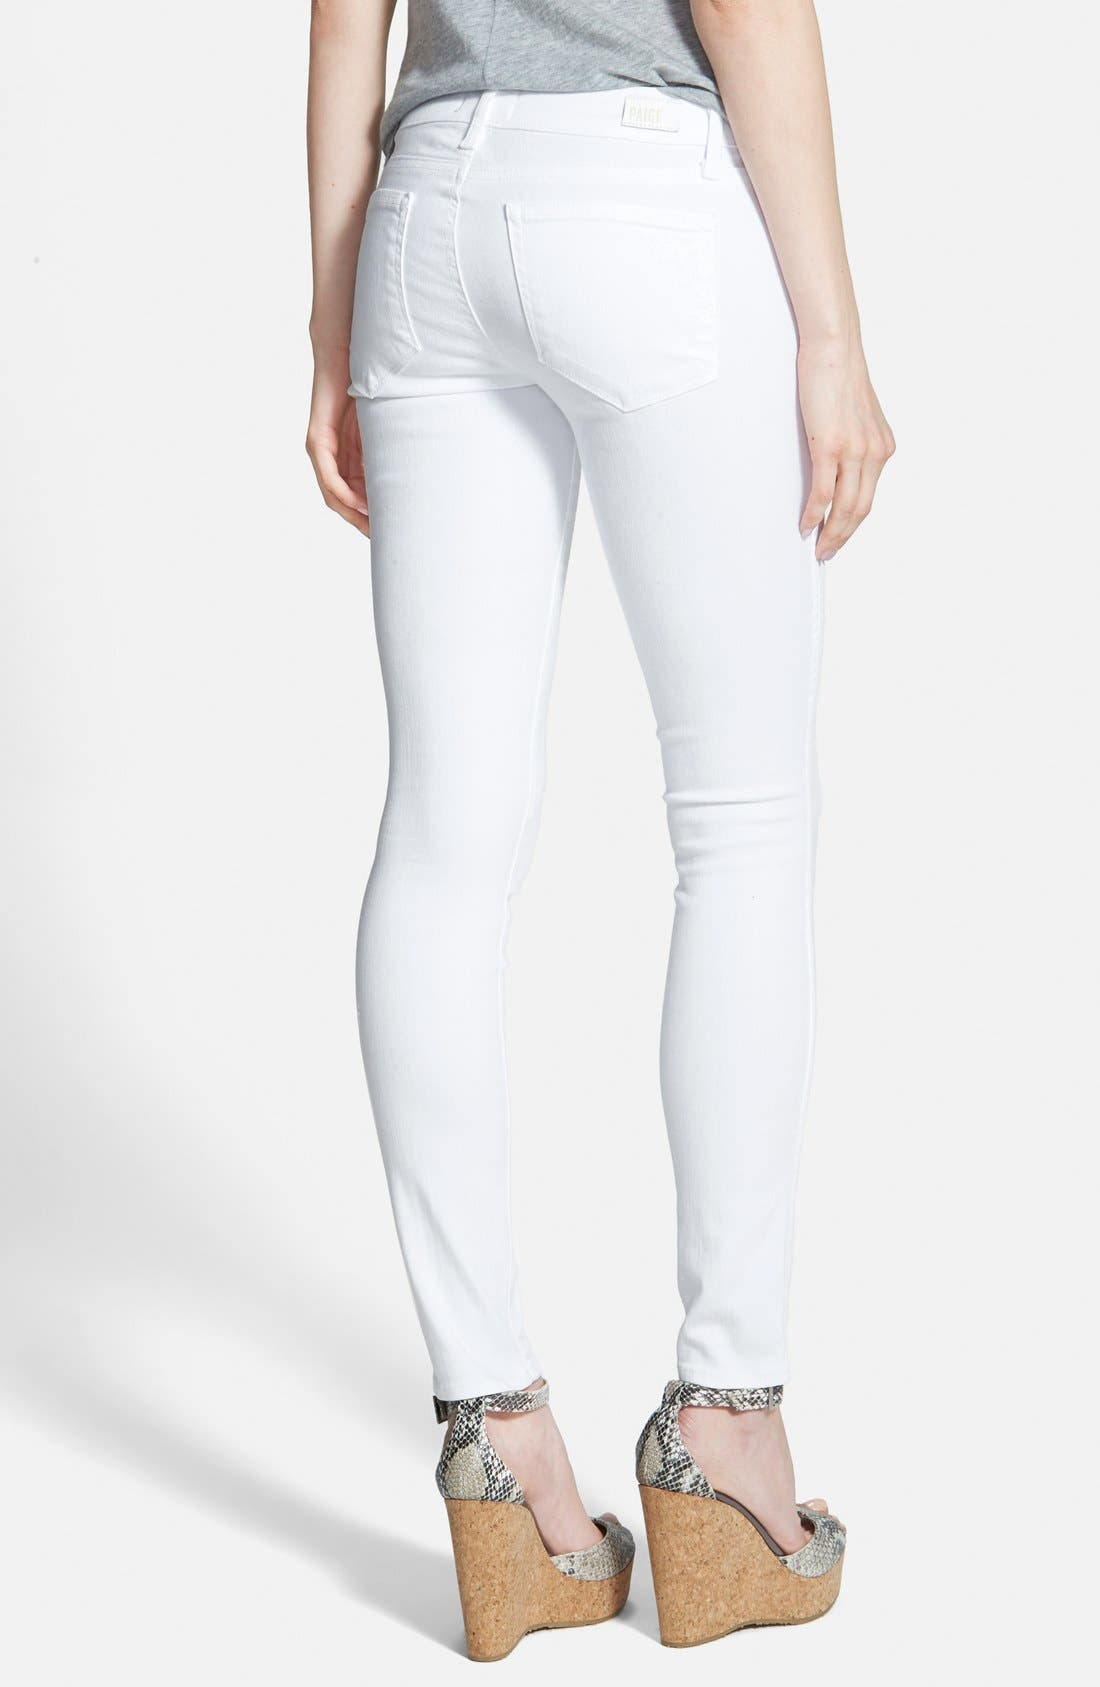 'Verdugo' Ultra Skinny Jeans,                             Alternate thumbnail 2, color,                             100